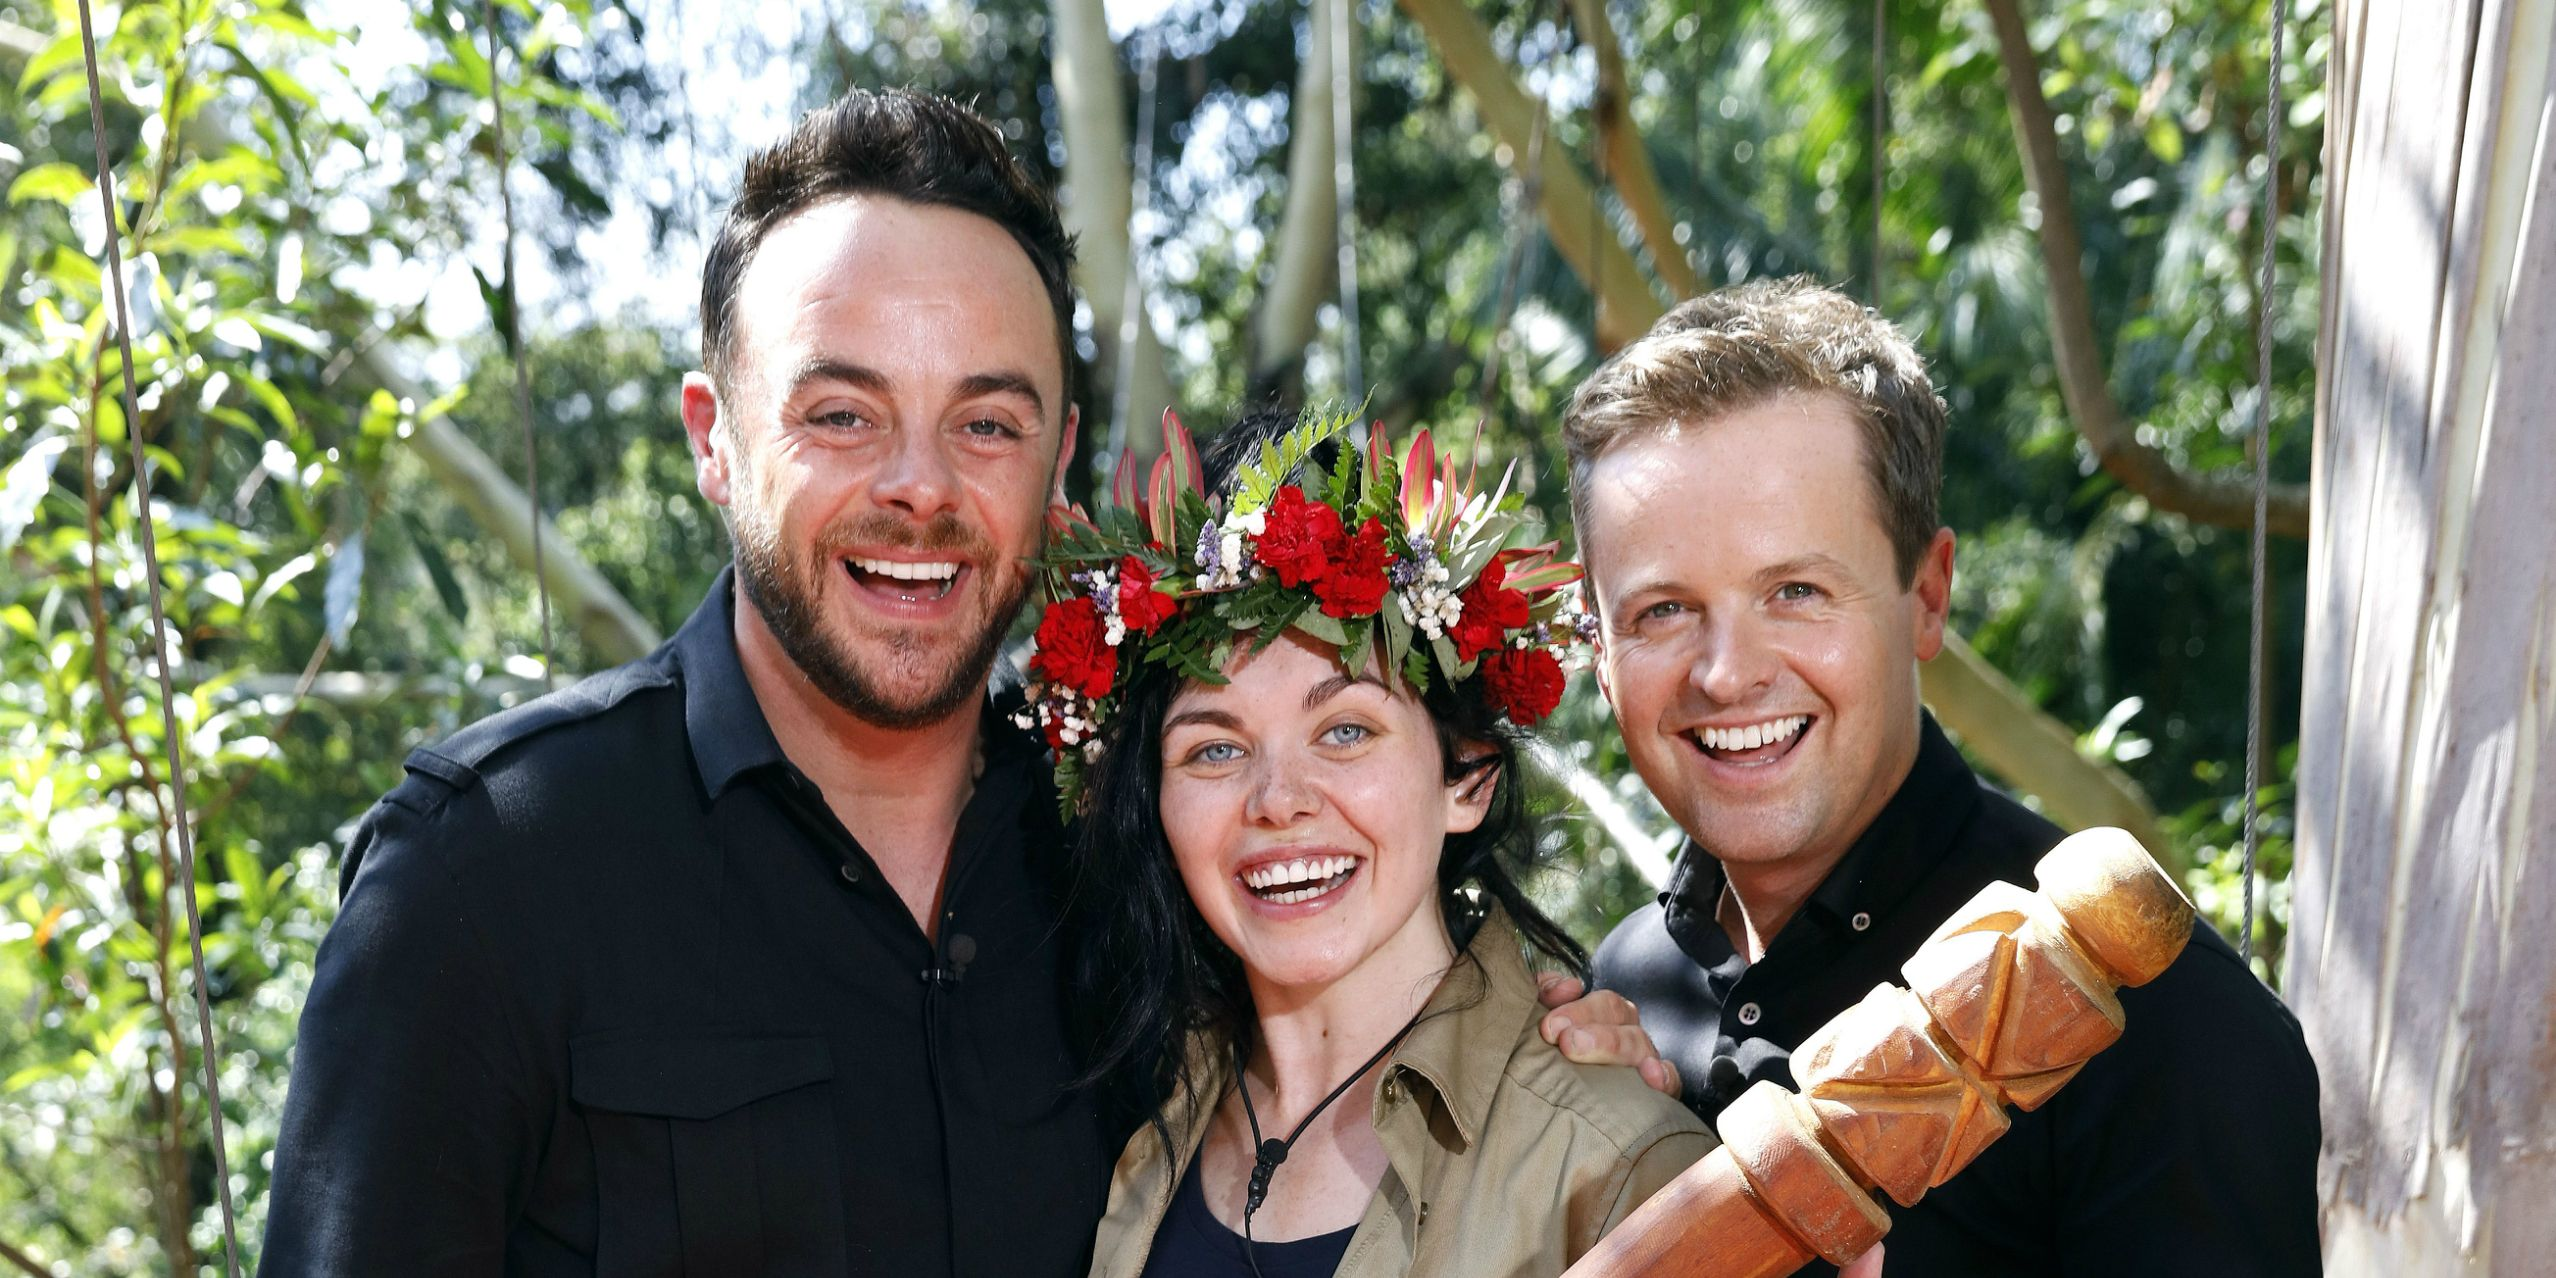 I'm a Celebrity 2016: Scarlett Moffatt is queen of the jungle